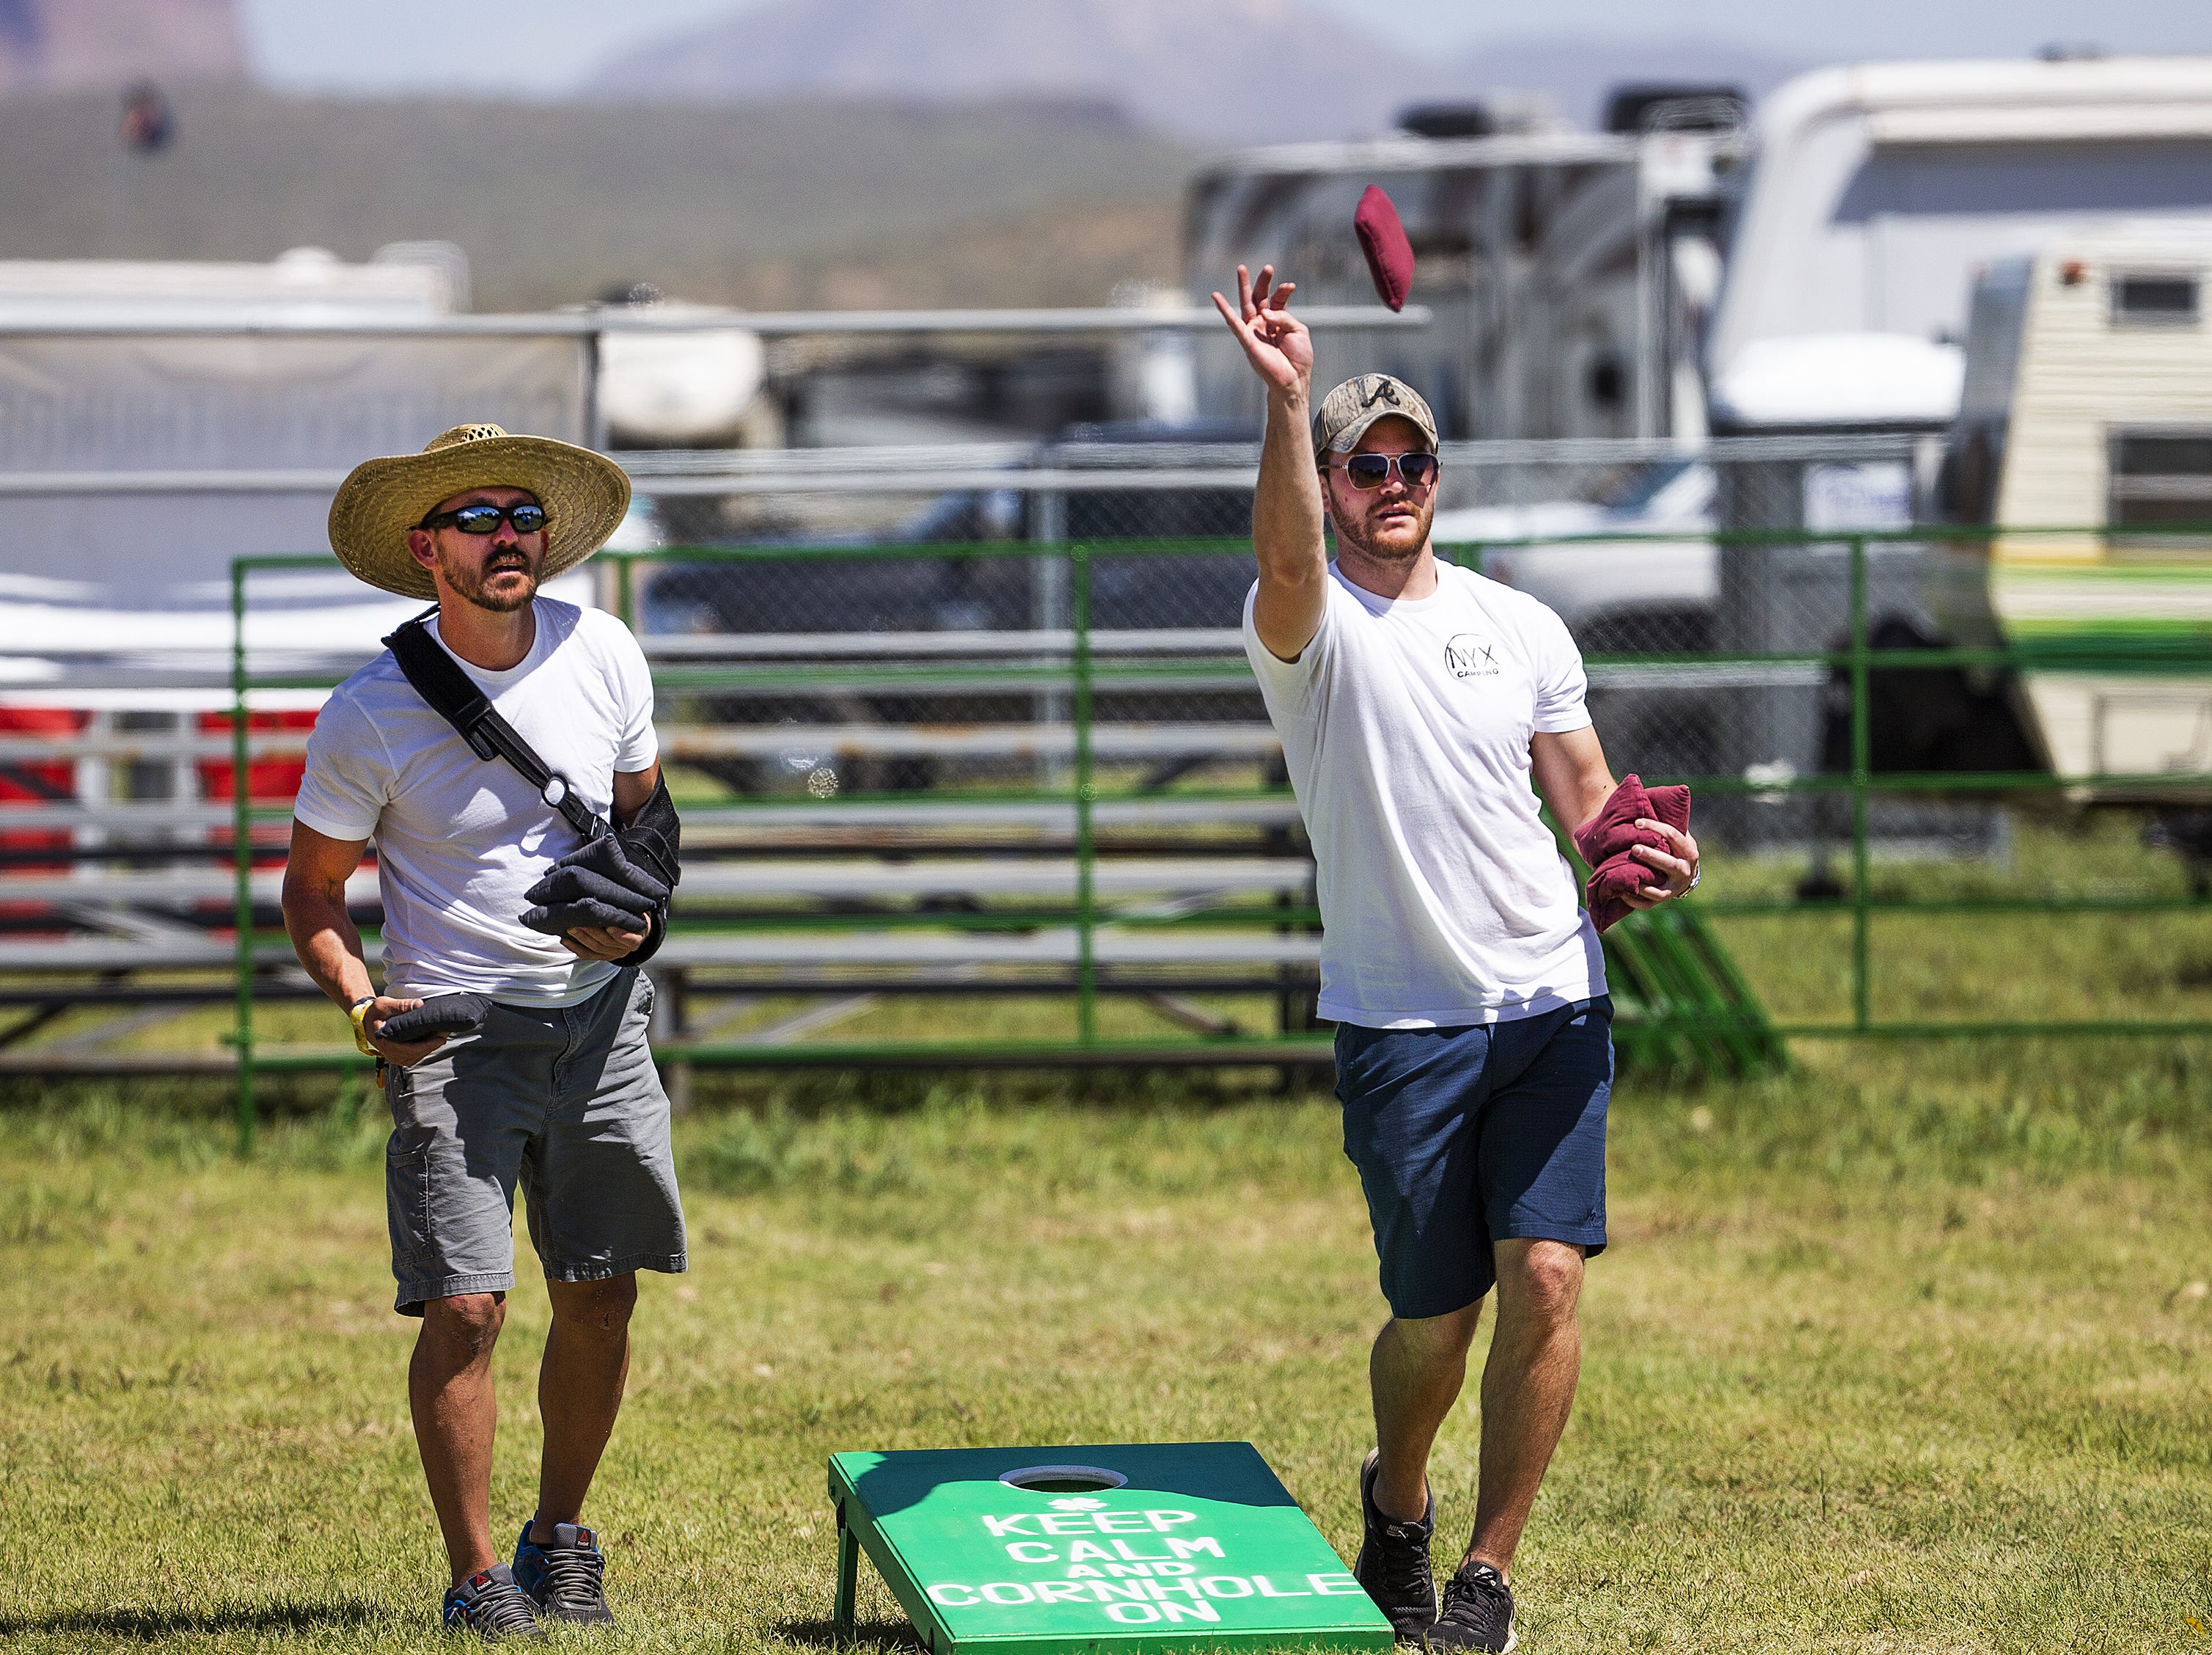 Cousins Kevin Hinsberg, left, 46, of Peoria, and Nick Hinsberg, 27 from Mission Viejo, California, play cornhole at a campsite at the Country Thunder Arizona 2019 music festival outside Florence, April 10, 2019.